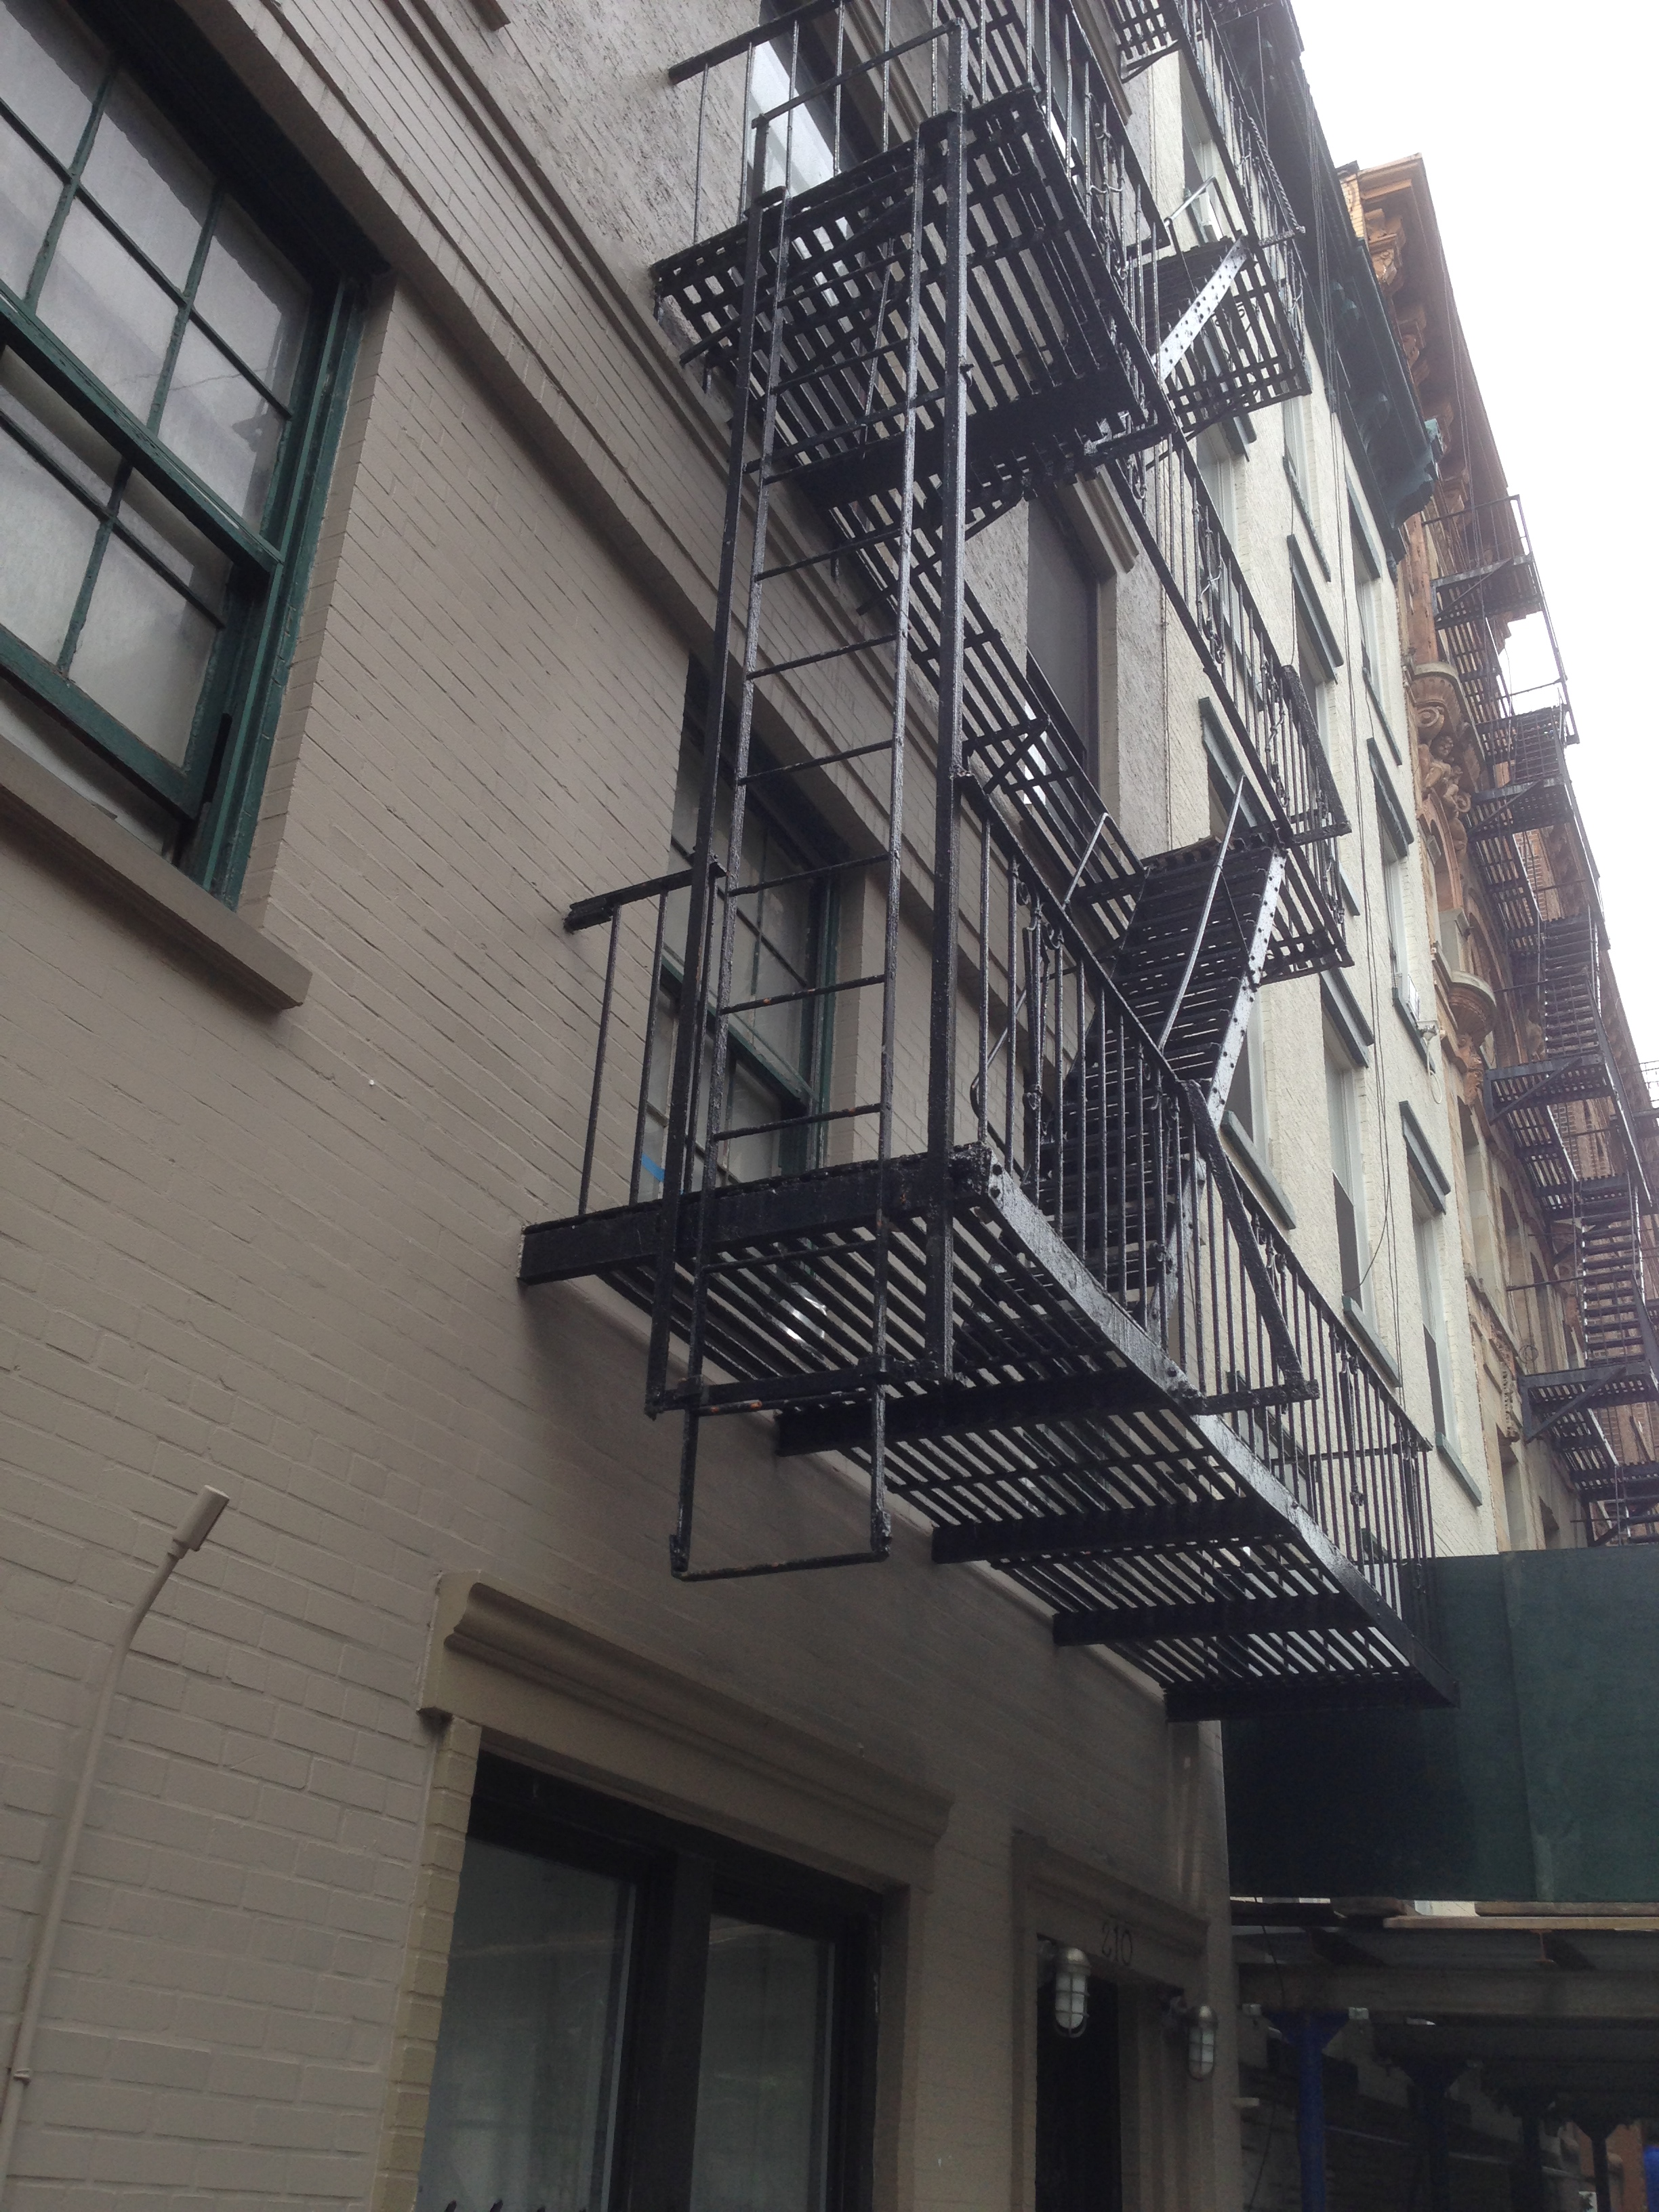 Joseph Winters Fire Escape Ladder : Fire escape lader pictures to pin on pinterest daddy